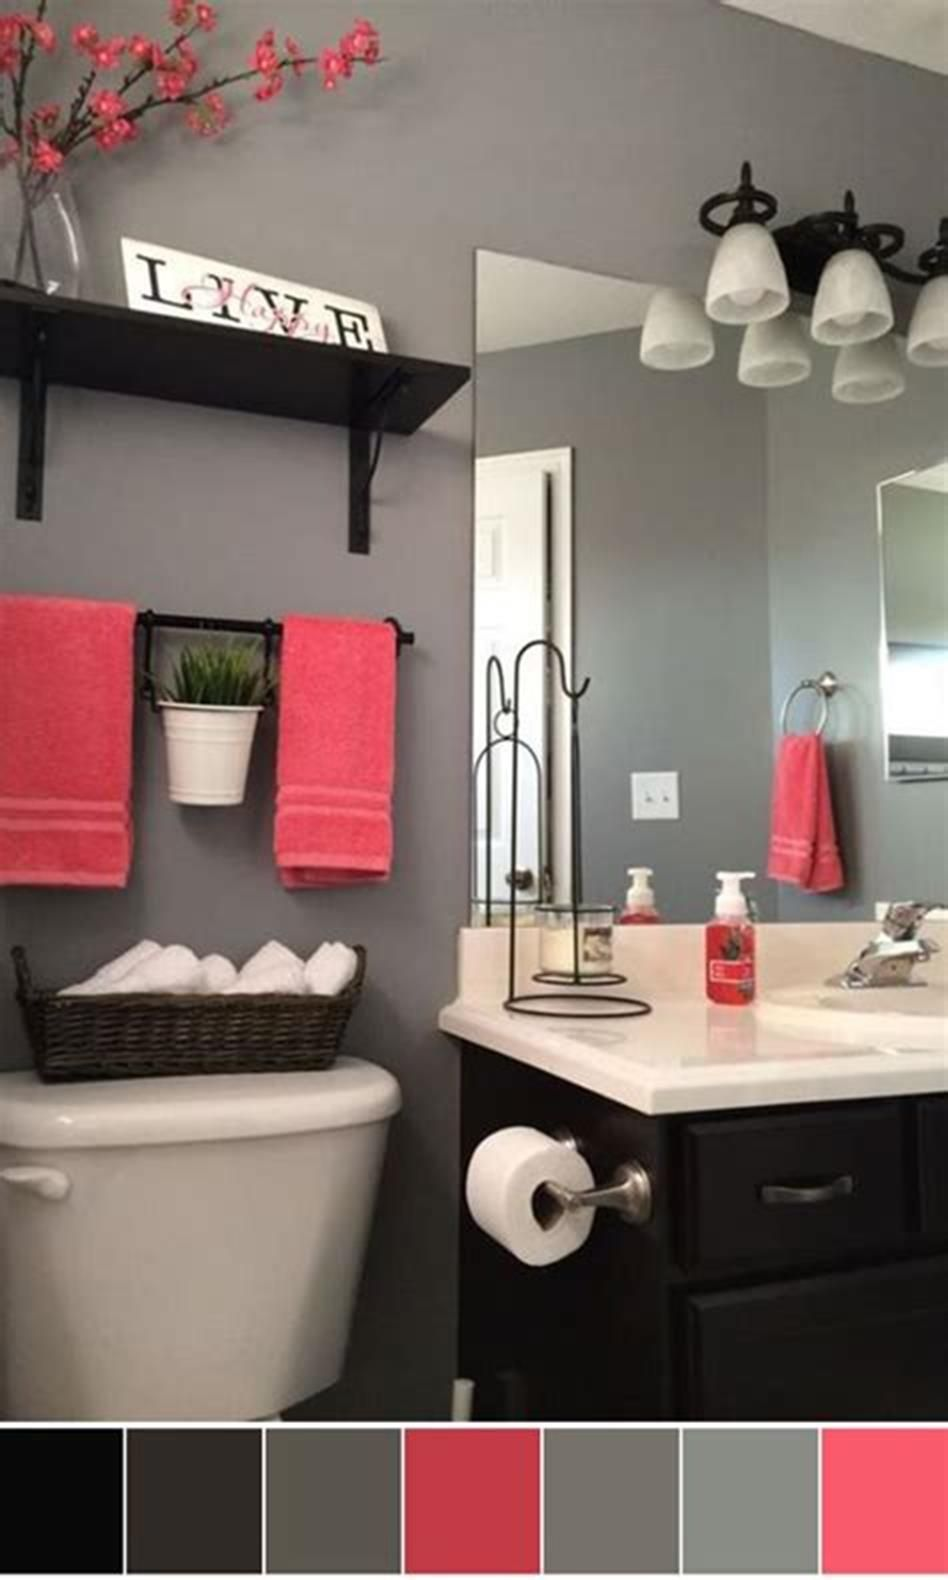 4+ Best Color Schemes Bathroom Decorating Ideas on a Budget 4